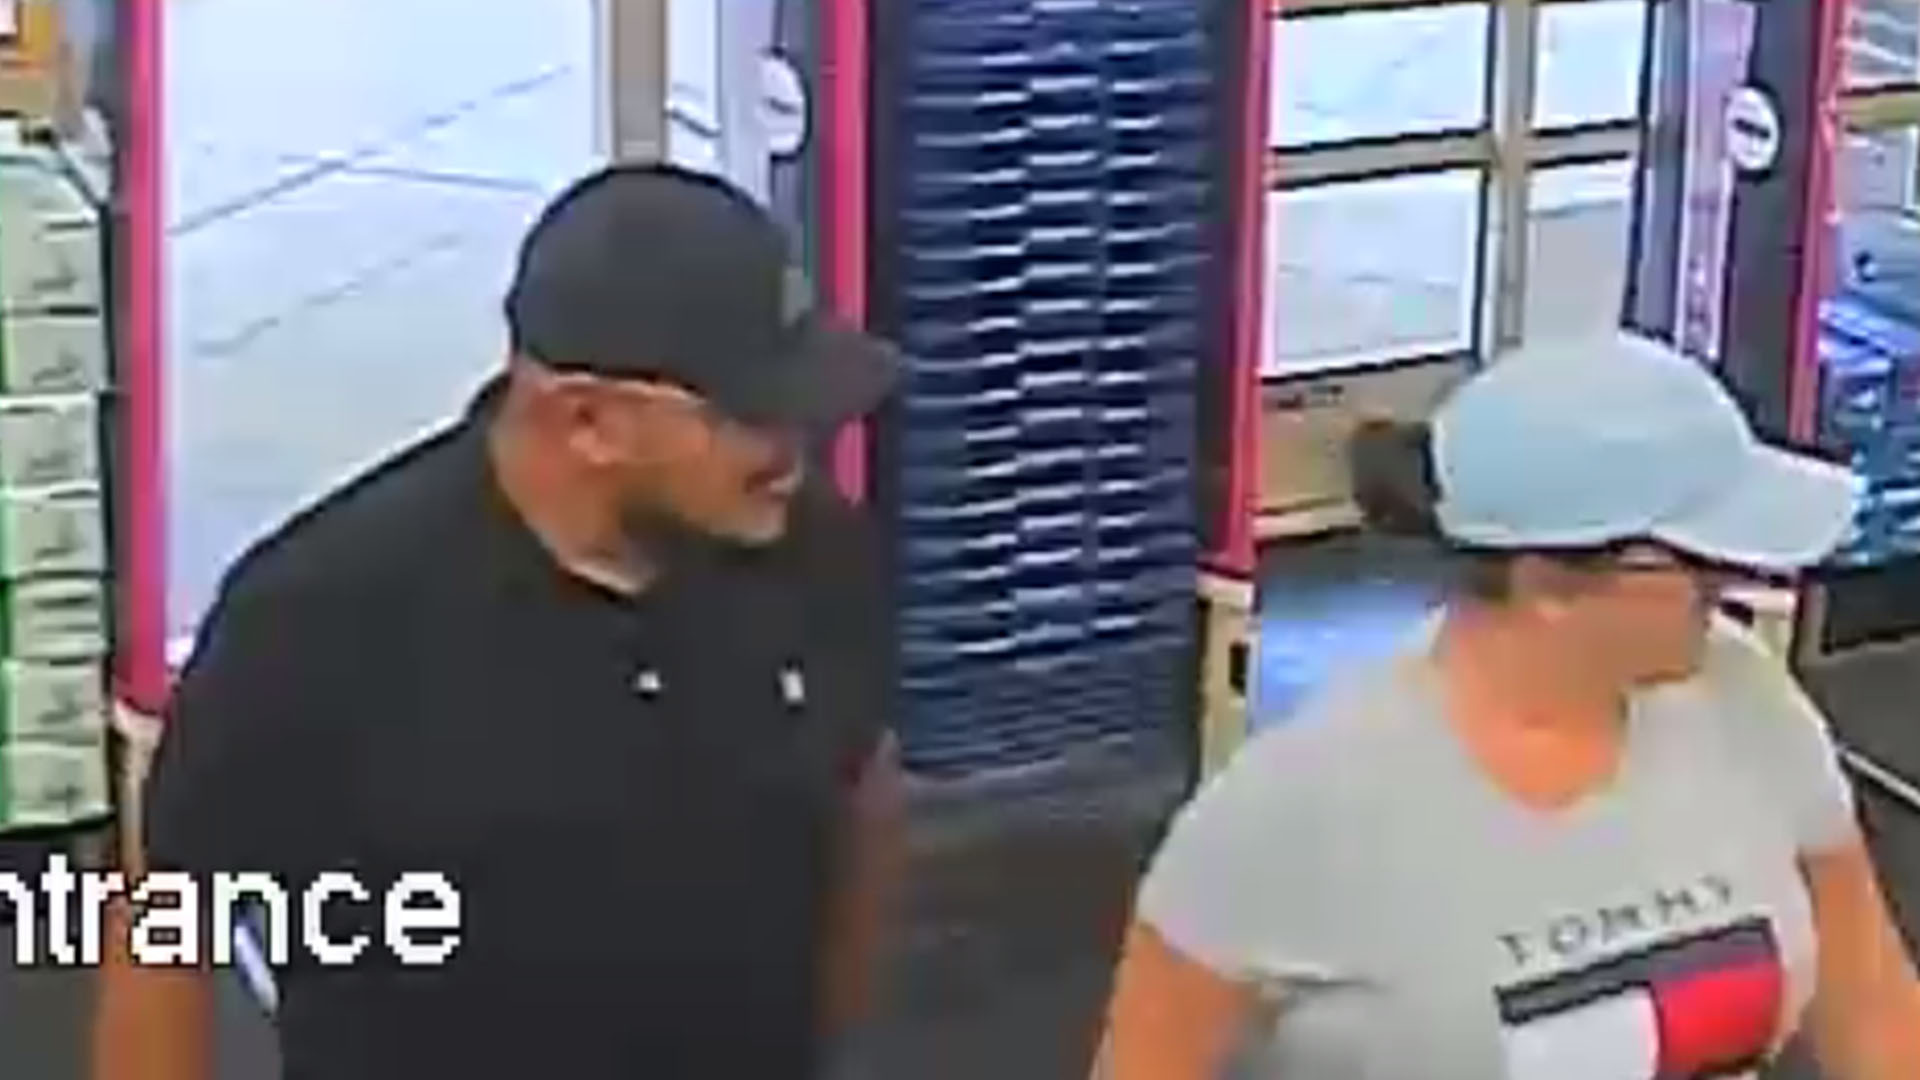 Kettering Credit Card thefts